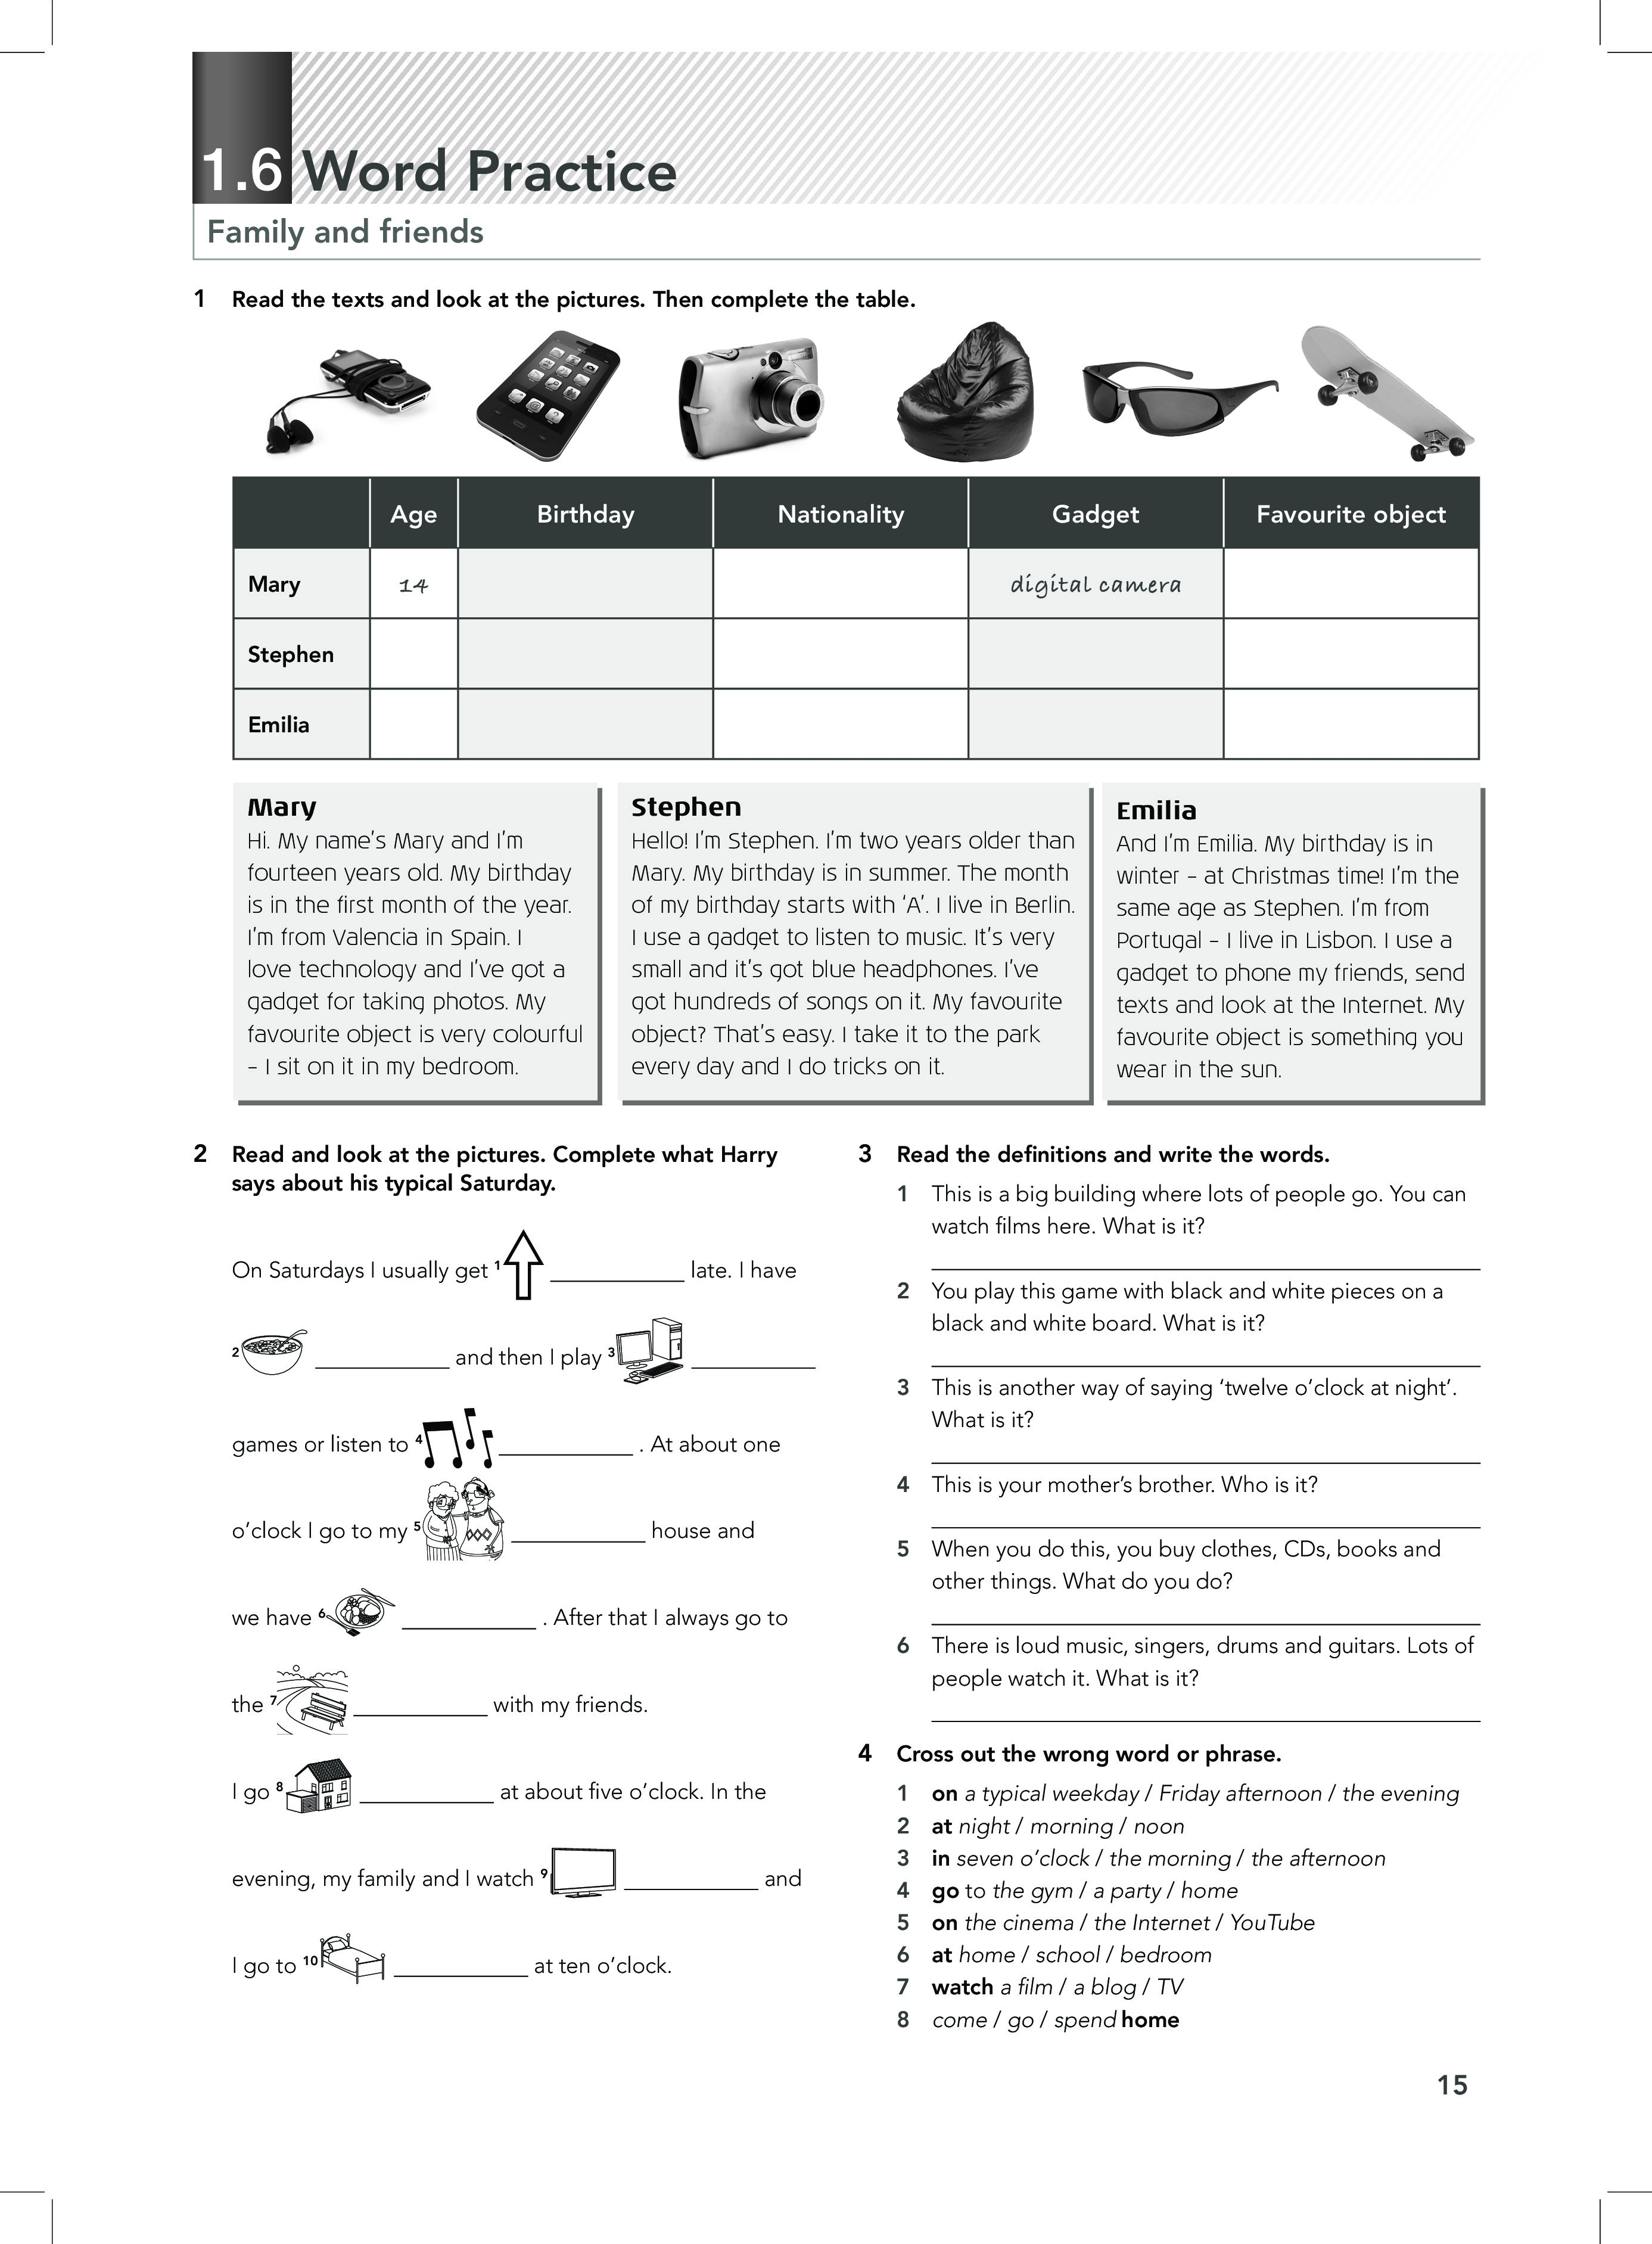 FOCUS WorkBook 1